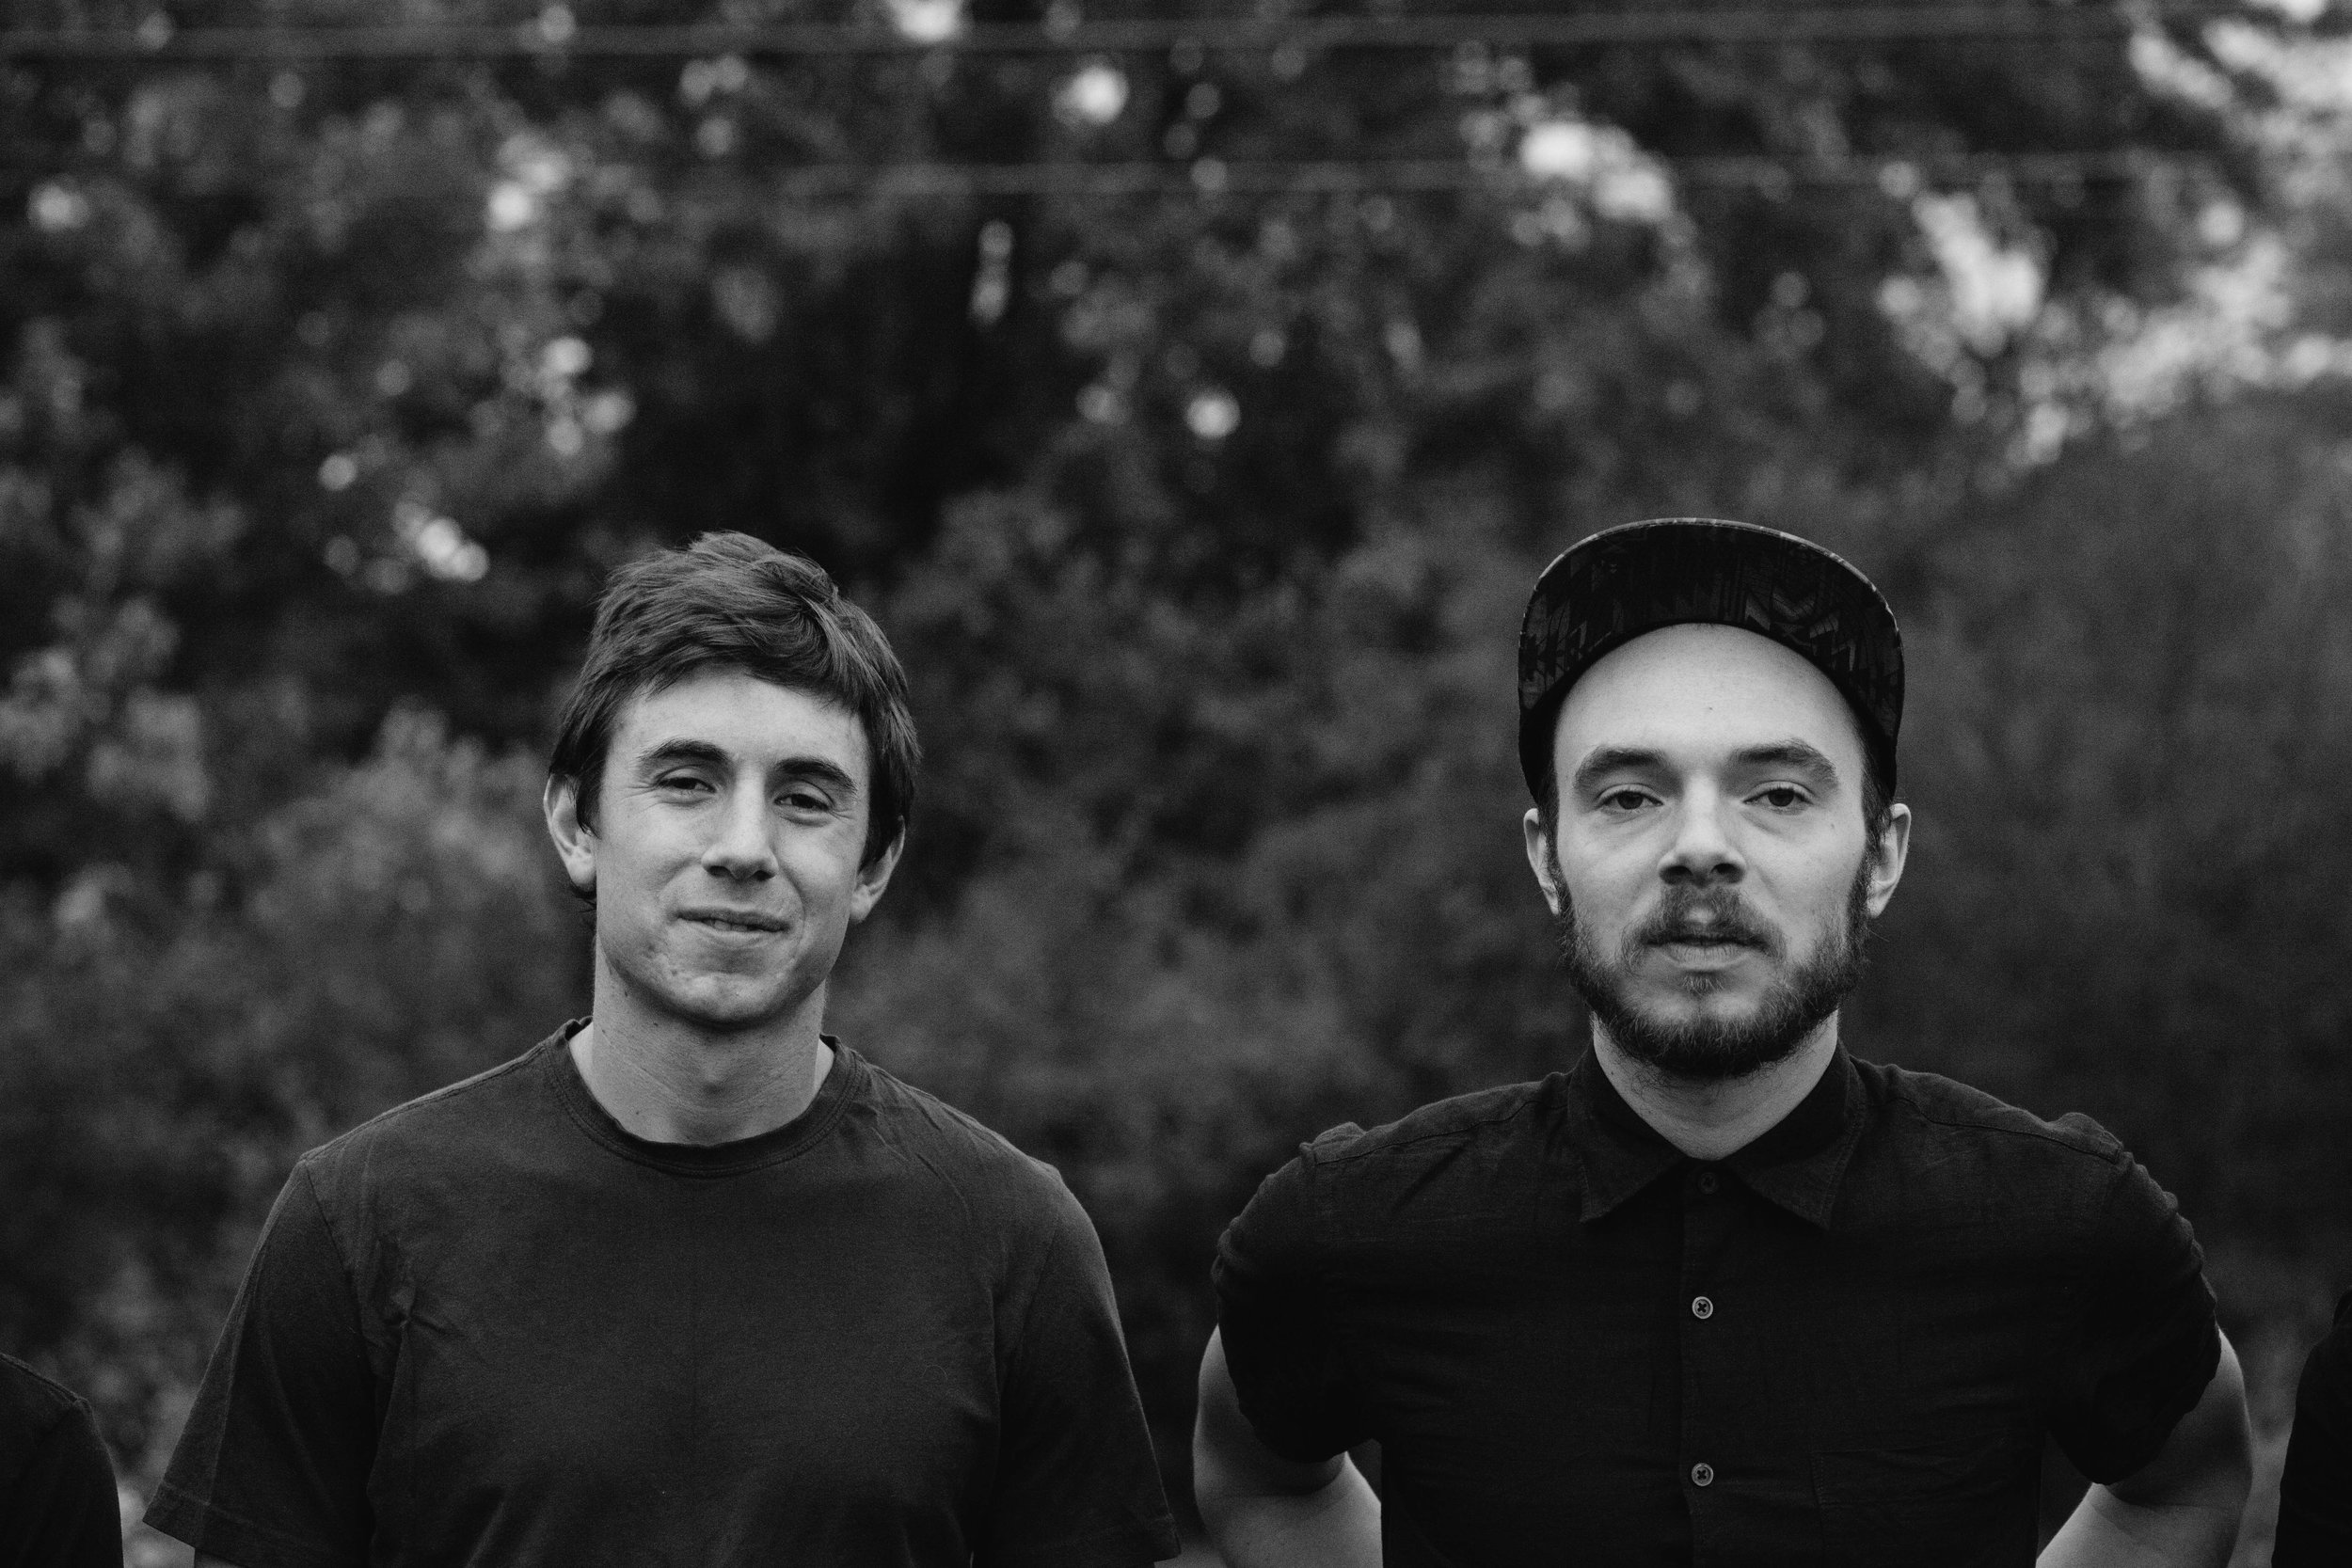 """Frances Luke Accord - """"Frances Luke Accord are some of our very favorite musicians, songwriters, and people. We couldn't recommend their debut LP, FLUKE, highly enough."""" - Darlingside"""